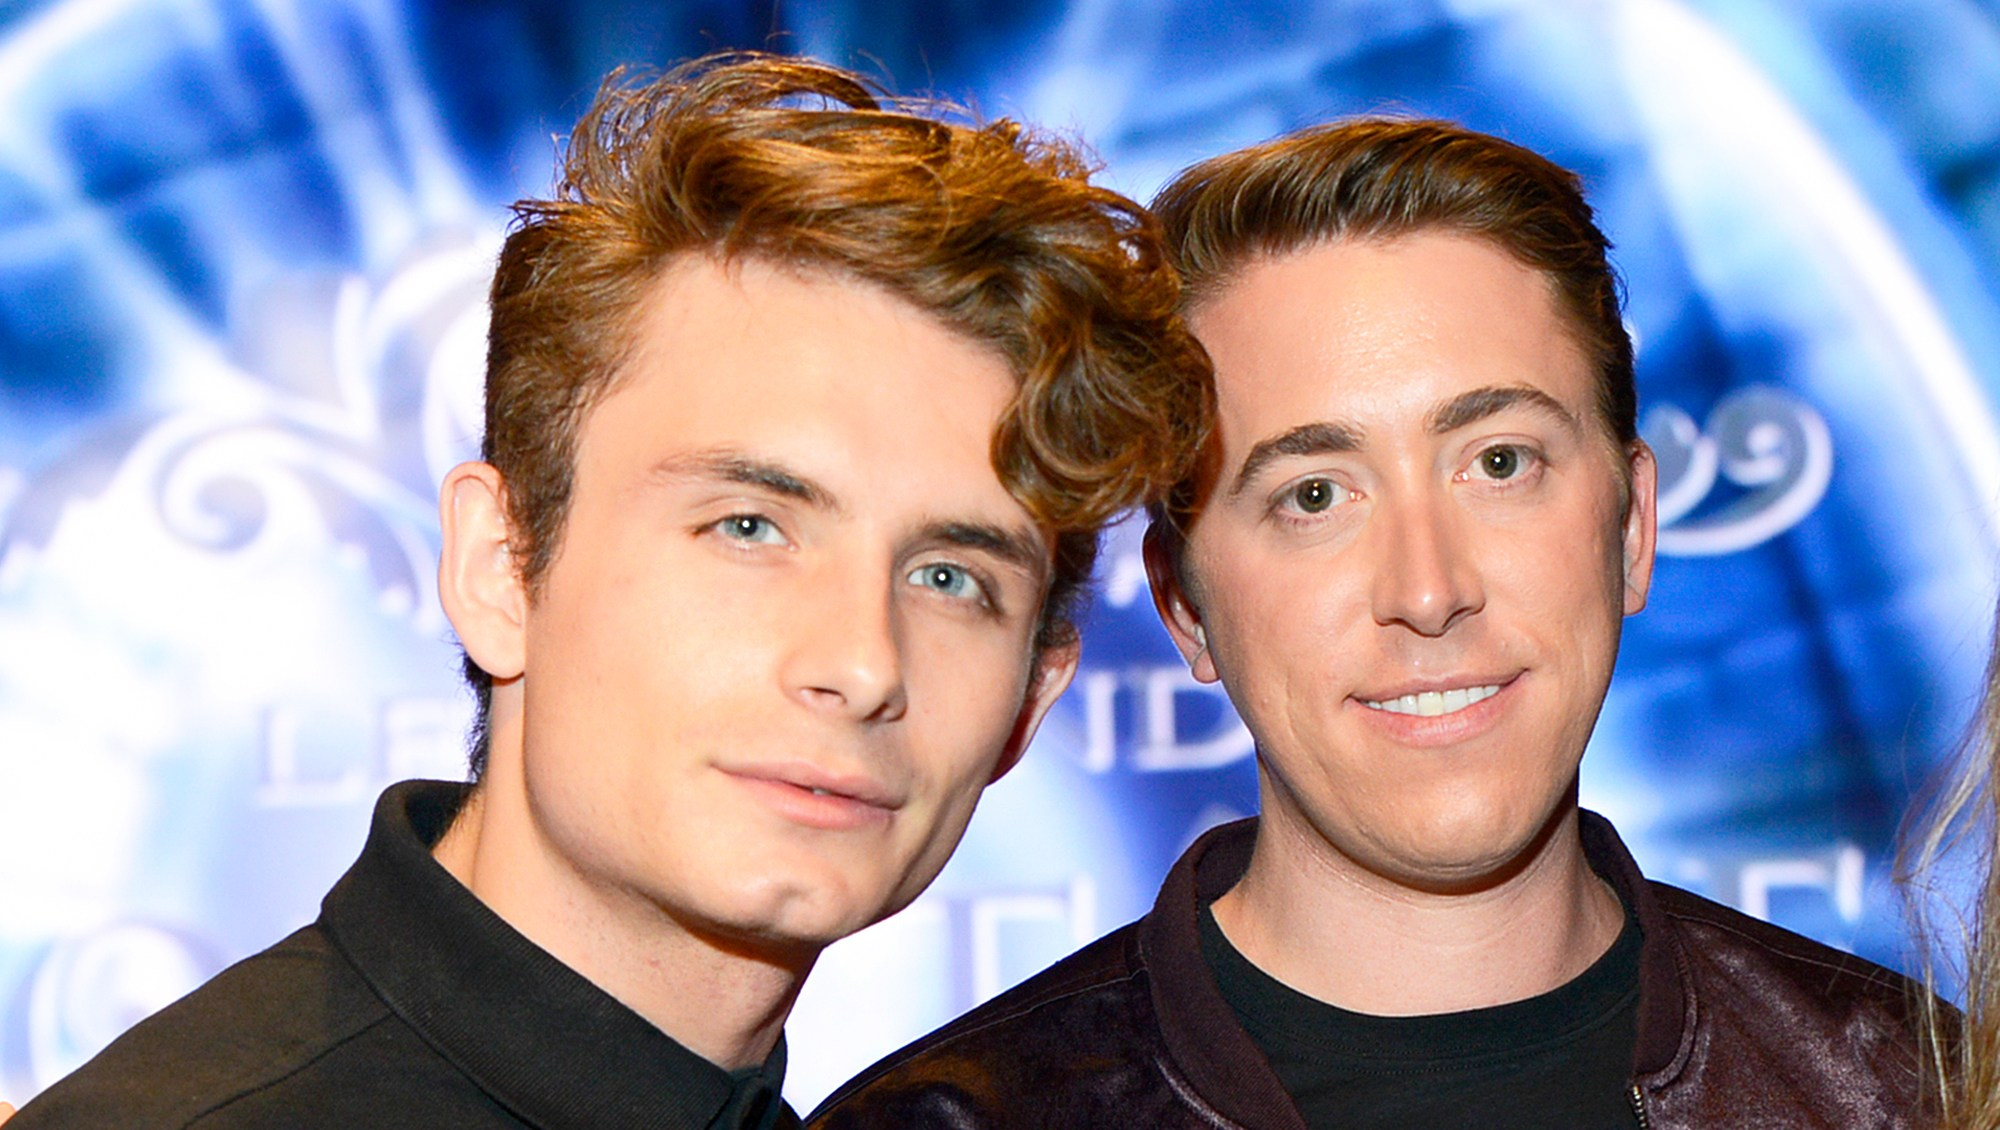 James Kennedy and Logan Noh attend Art Hearts Fashion LAFW Fall/Winter 2017 at The Beverly Hilton Hotel in Beverly Hills, California.